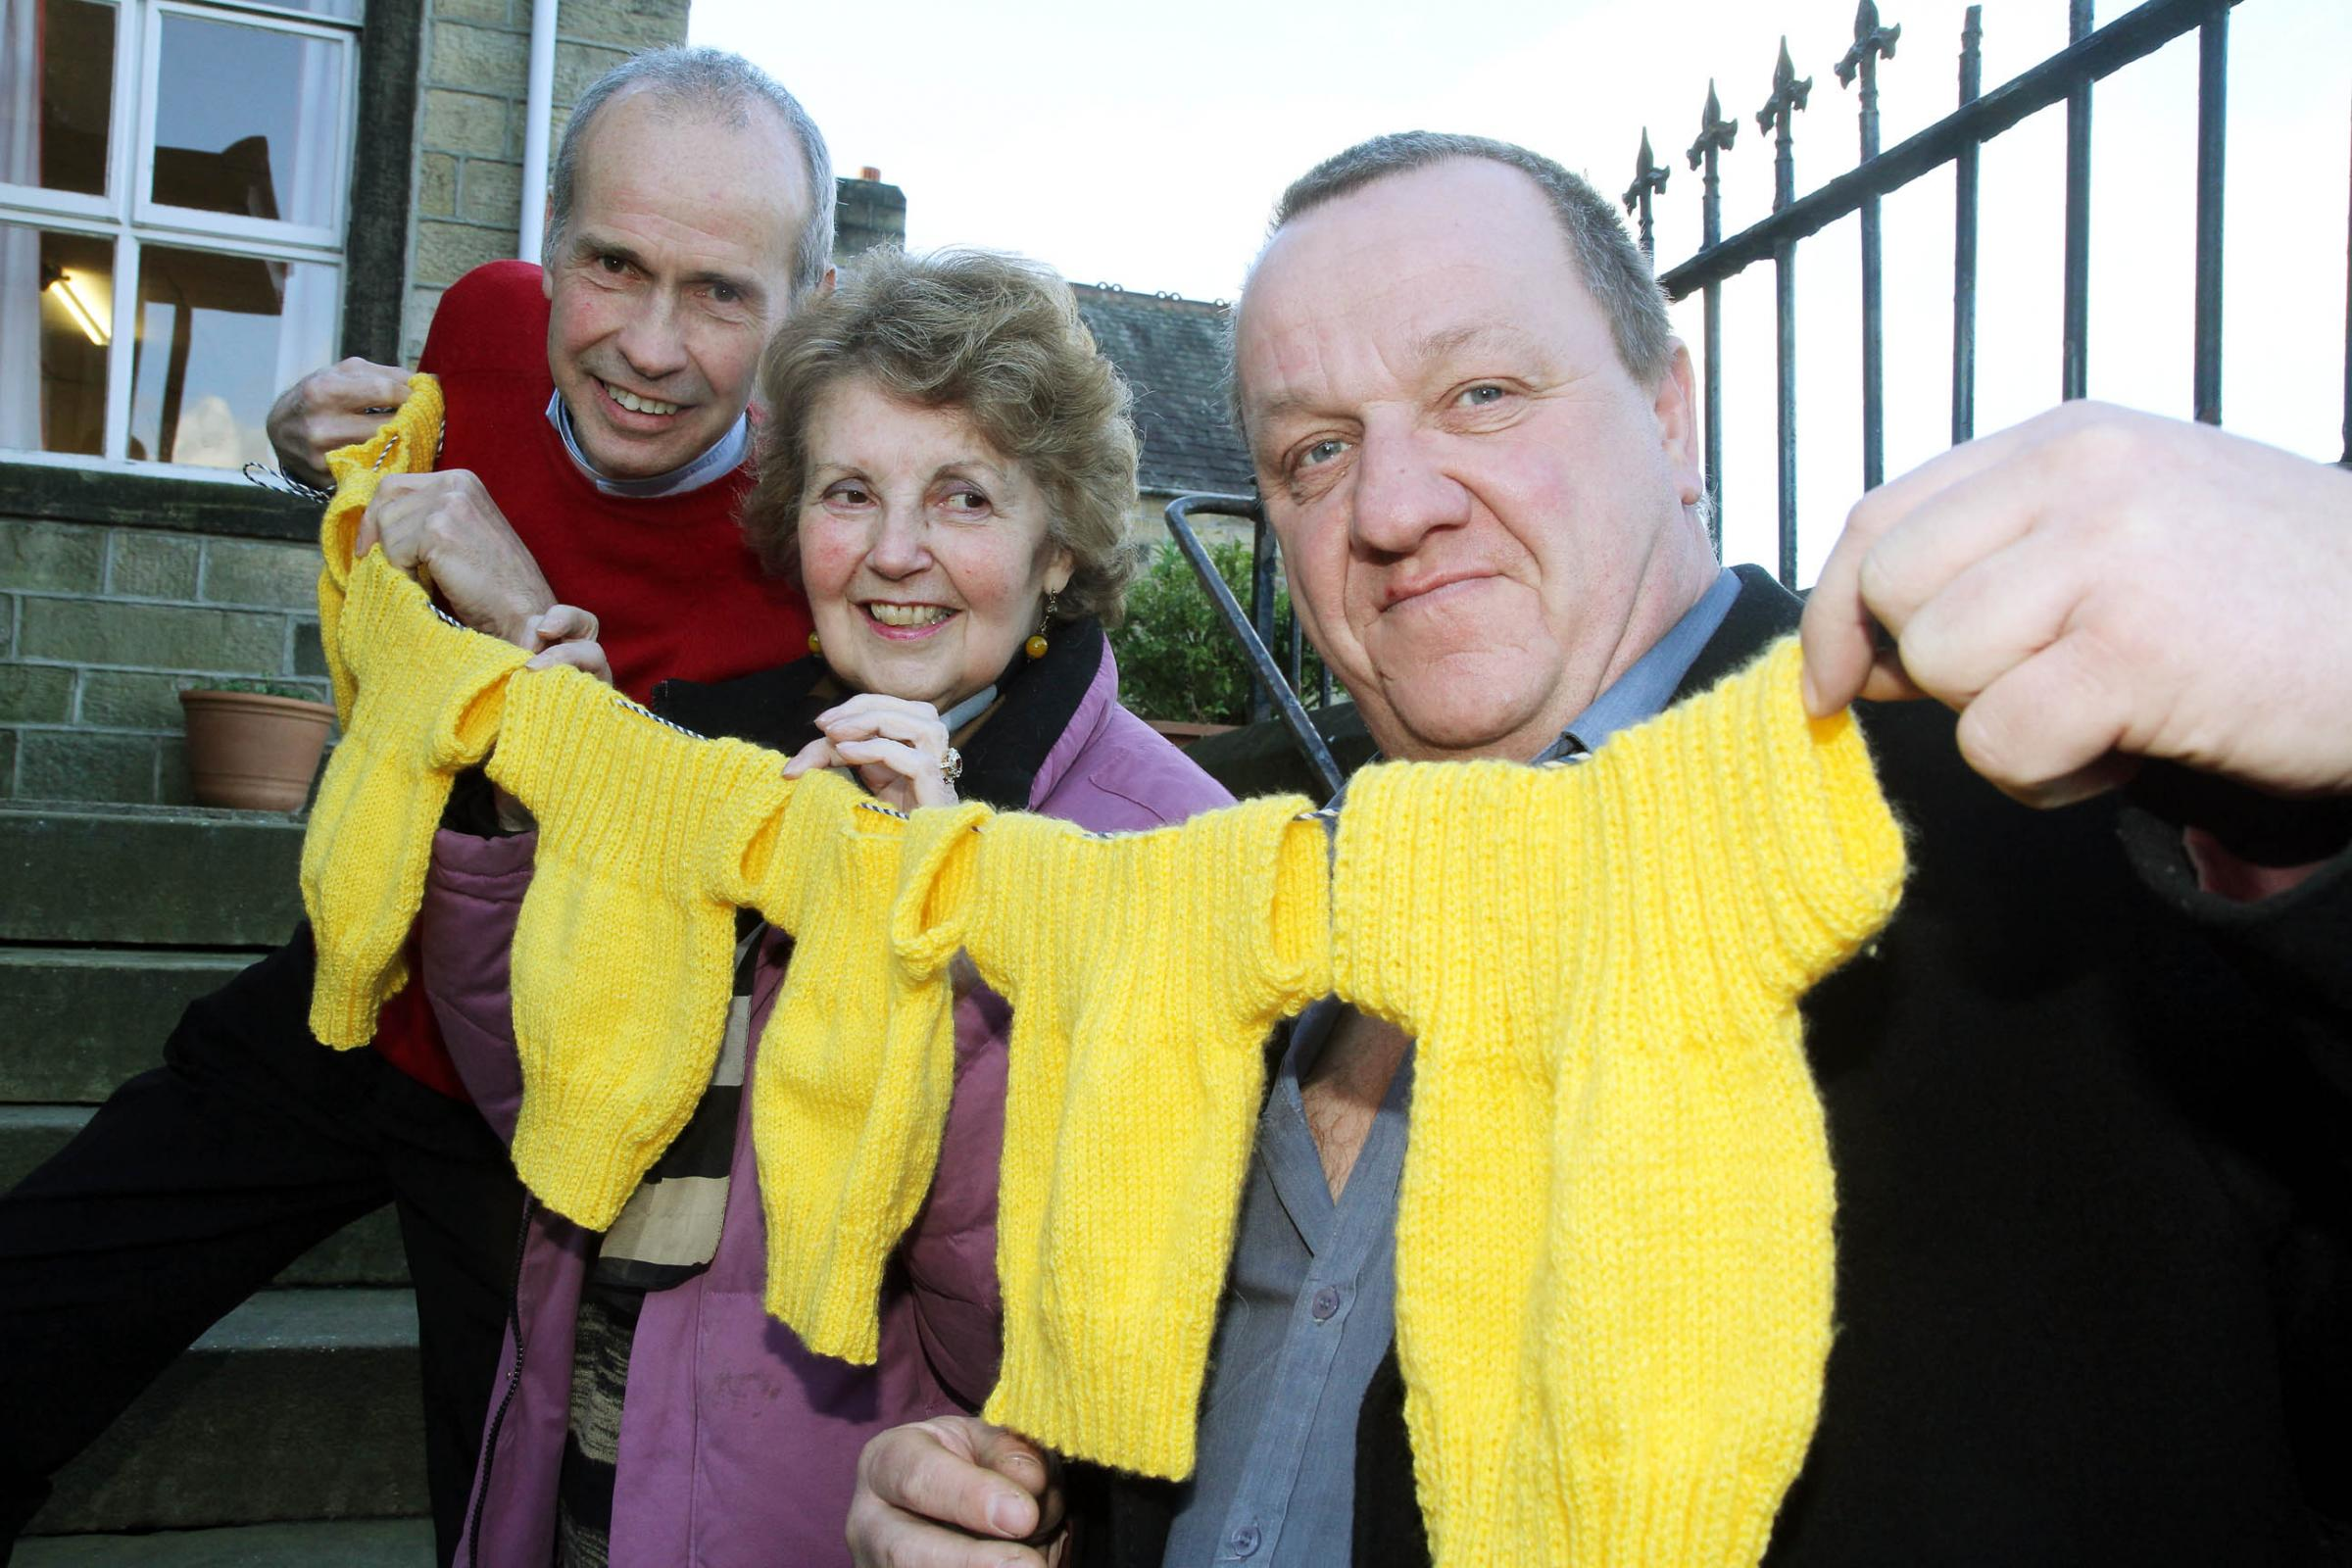 Silsden mayor Councillor Chris Atkinson shows off some of the knitted yellow jerseys with the Rev David Griffiths and St James's churchwarden Sheila Thompson